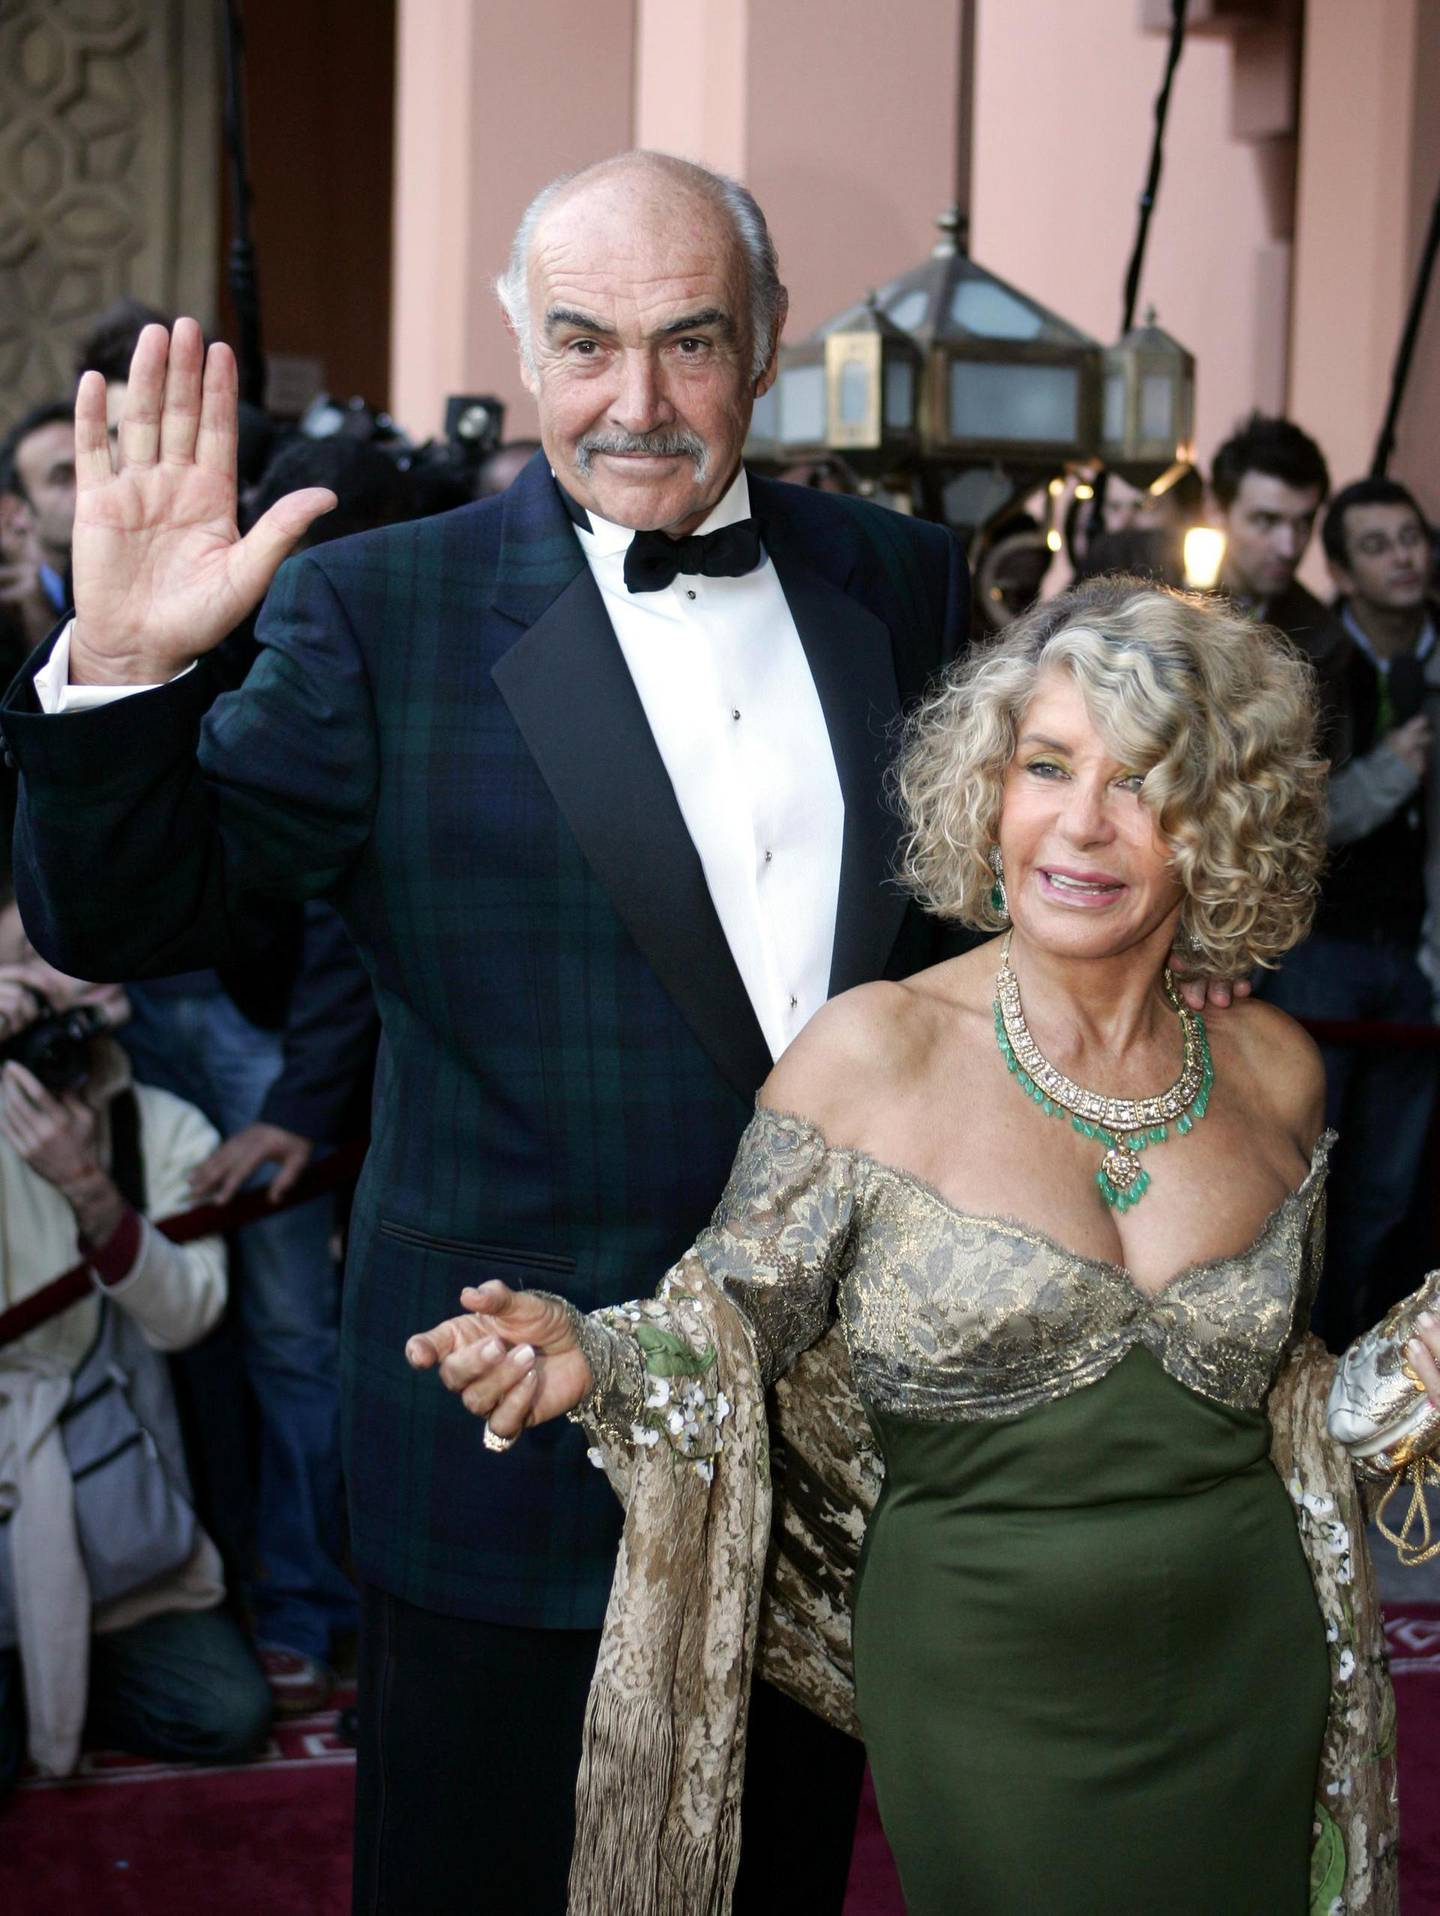 """(FILES) In this file photo taken on December 07, 2004 British actor Sean Connery and his wife, Micheline Roquebrune, arrive for the presentation of """"Alexendre,"""" directed by Oliver Stone, during the 44th International Film Festival in Marrakesh. Legendary British actor Sean Connery, best known for playing fictional spy James Bond in seven films, has died aged 90, his family told the BBC on on October 31, 2020. The Scottish actor, who was knighted in 2000, won numerous awards during his decades-spanning career, including an Oscar, three Golden Globes and two Bafta awards.  / AFP / Jack GUEZ"""